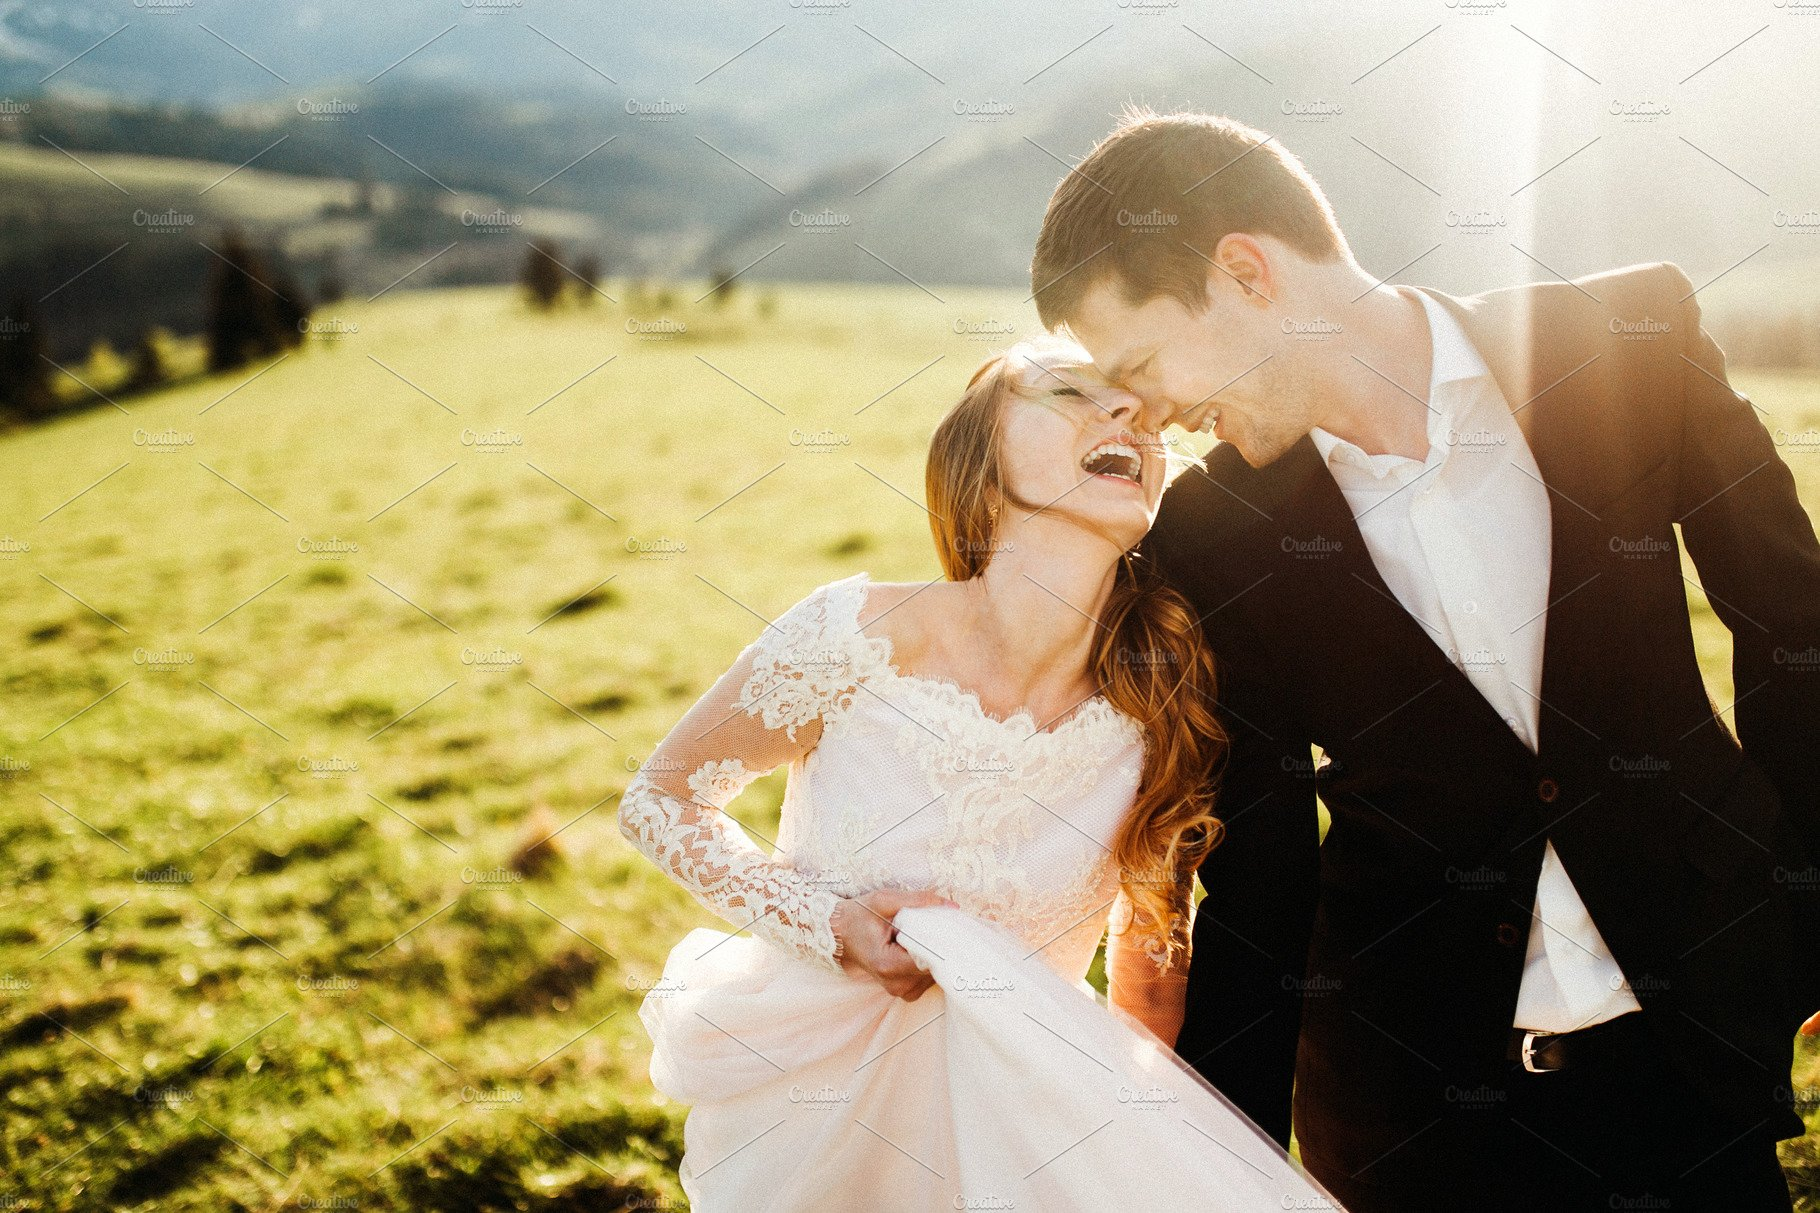 Happy wedding couple smiling   High-Quality People Images ~ Creative Market